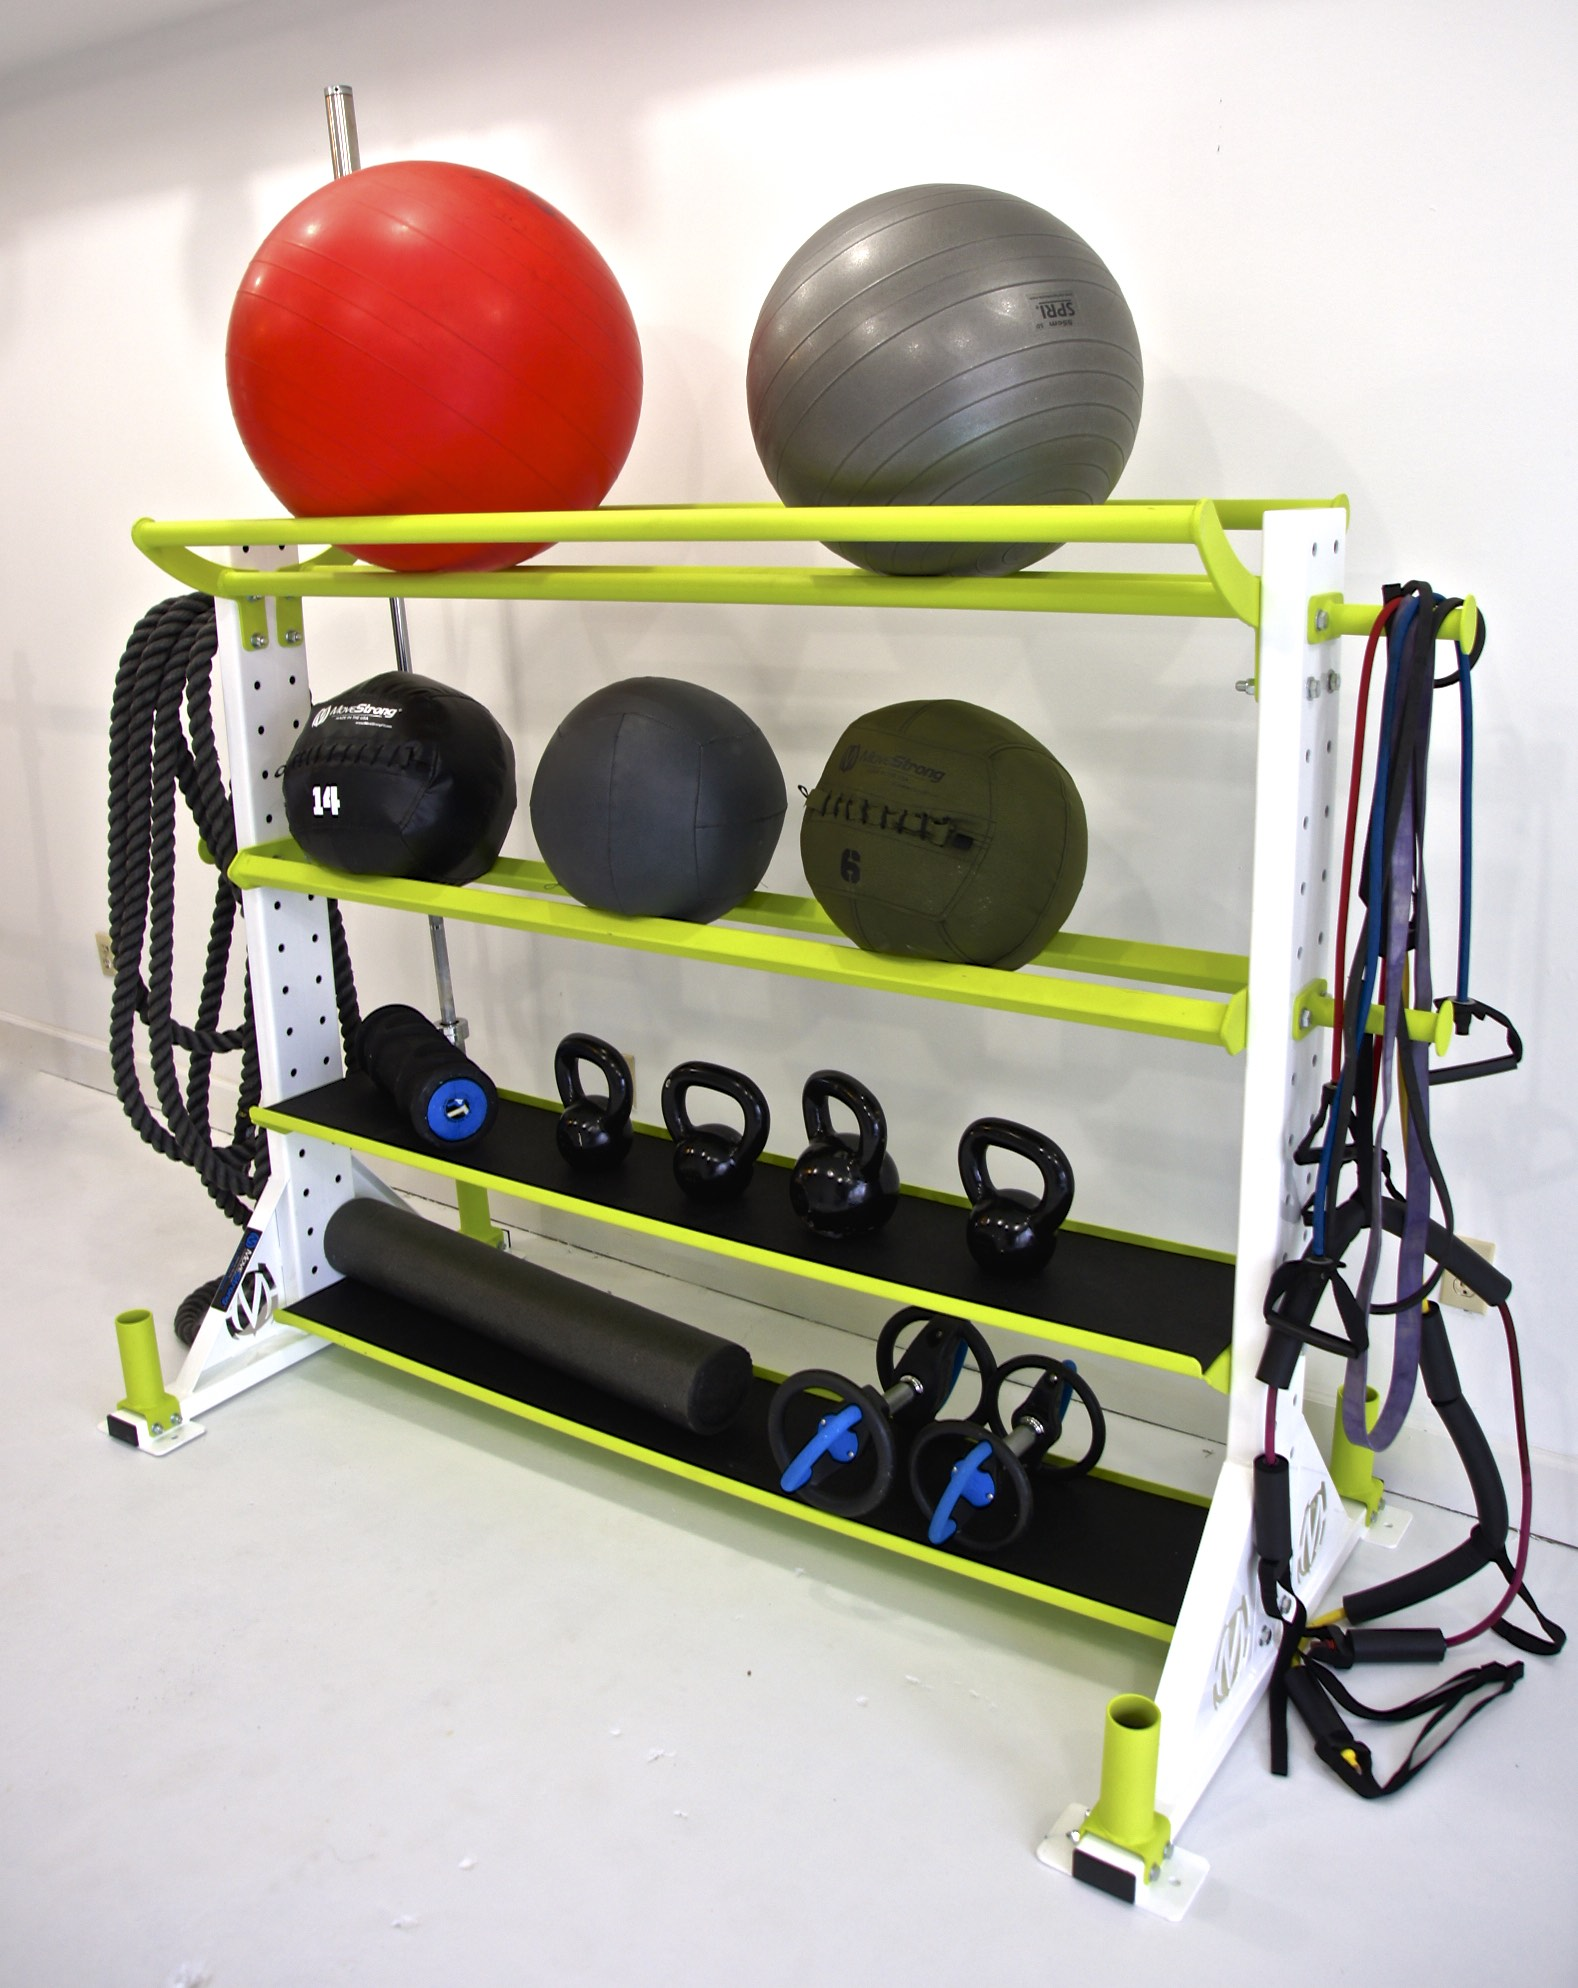 Stability Ball Holder tray on top